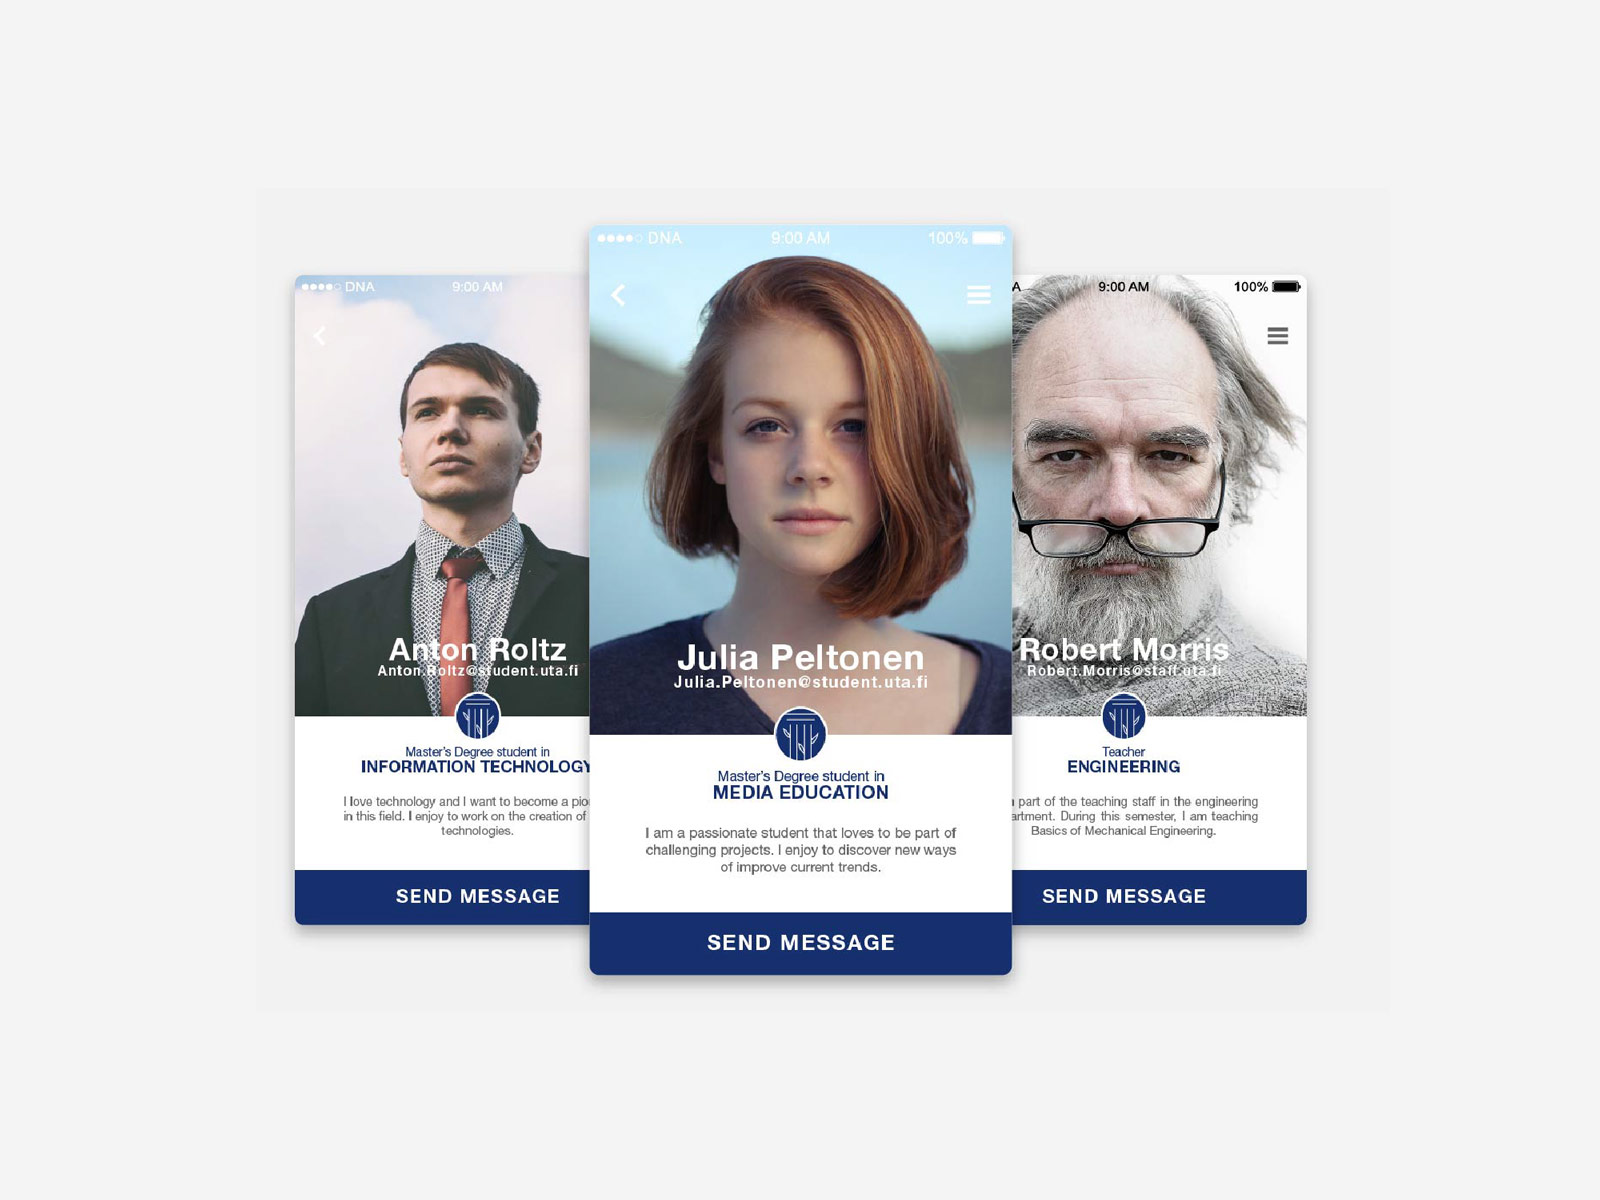 University of Tampere mobile application